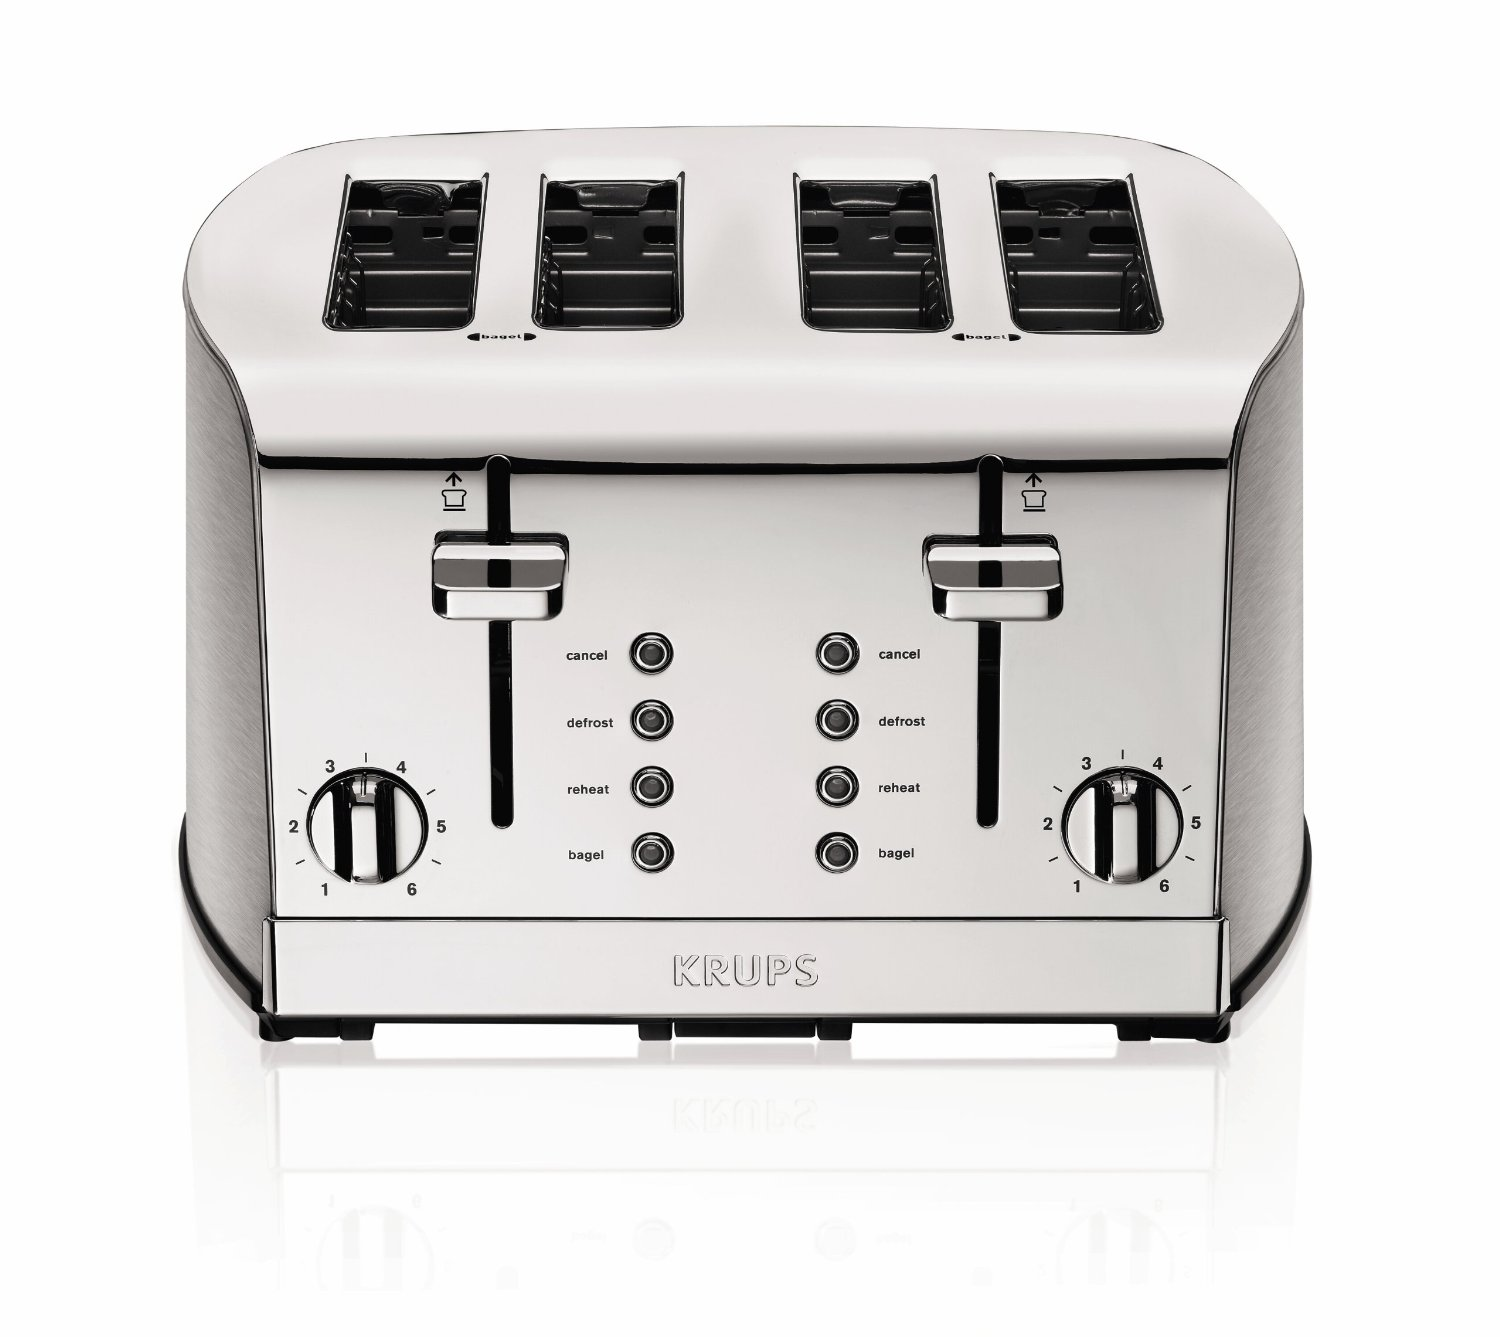 Krups Breakfast Stainless Steel 4 Slice Toaster